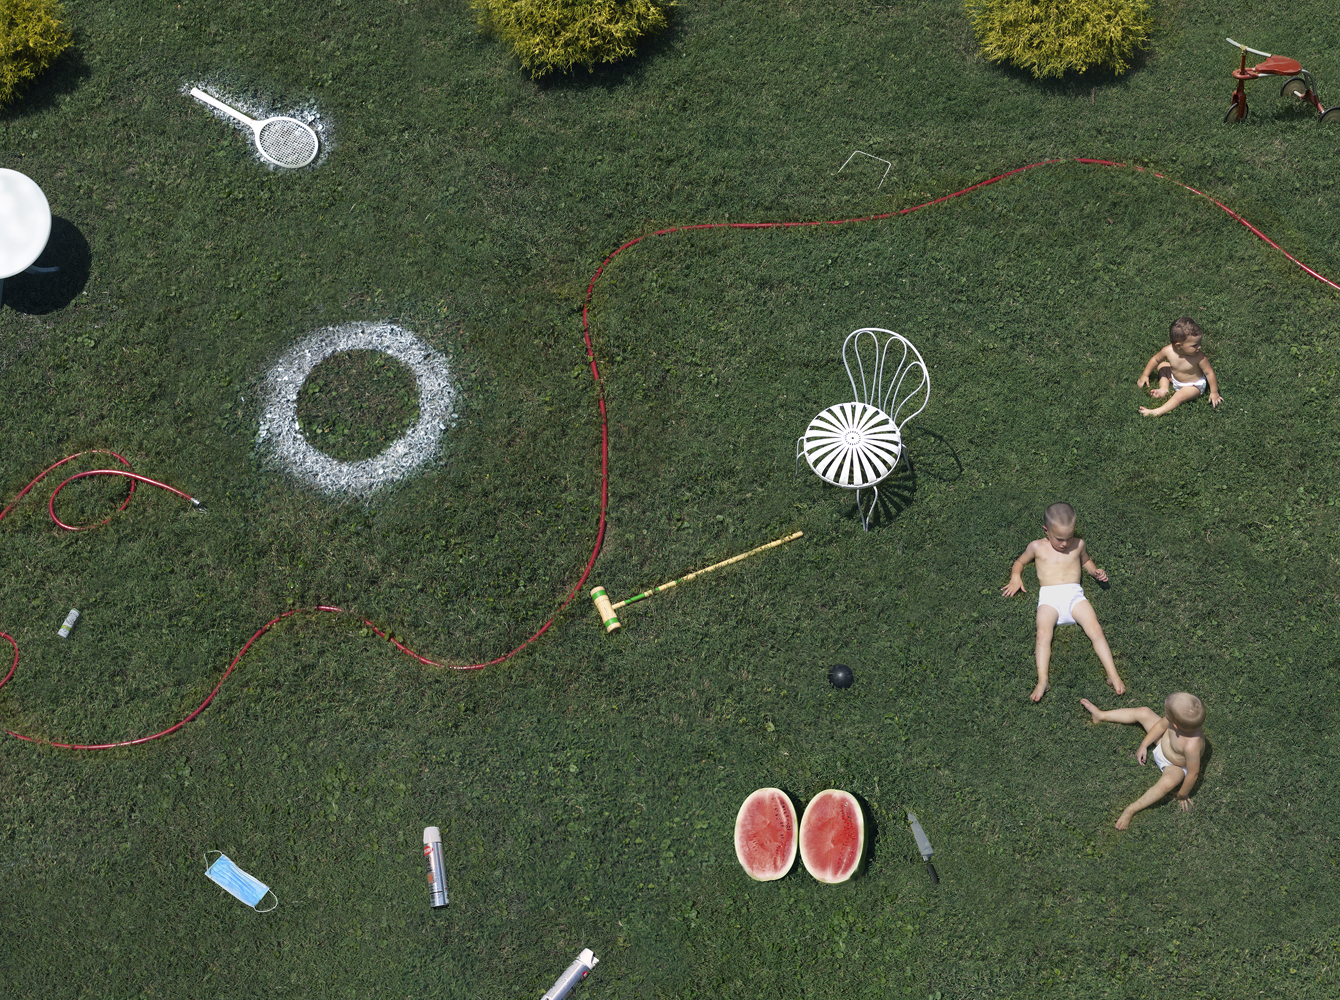 """Julie Blackmon, Spray Paint, 2020, archival pigment print, 26 x 33.5"""", 36 x 46.5"""", 44 x 57.5"""", editions of 7, price on request"""